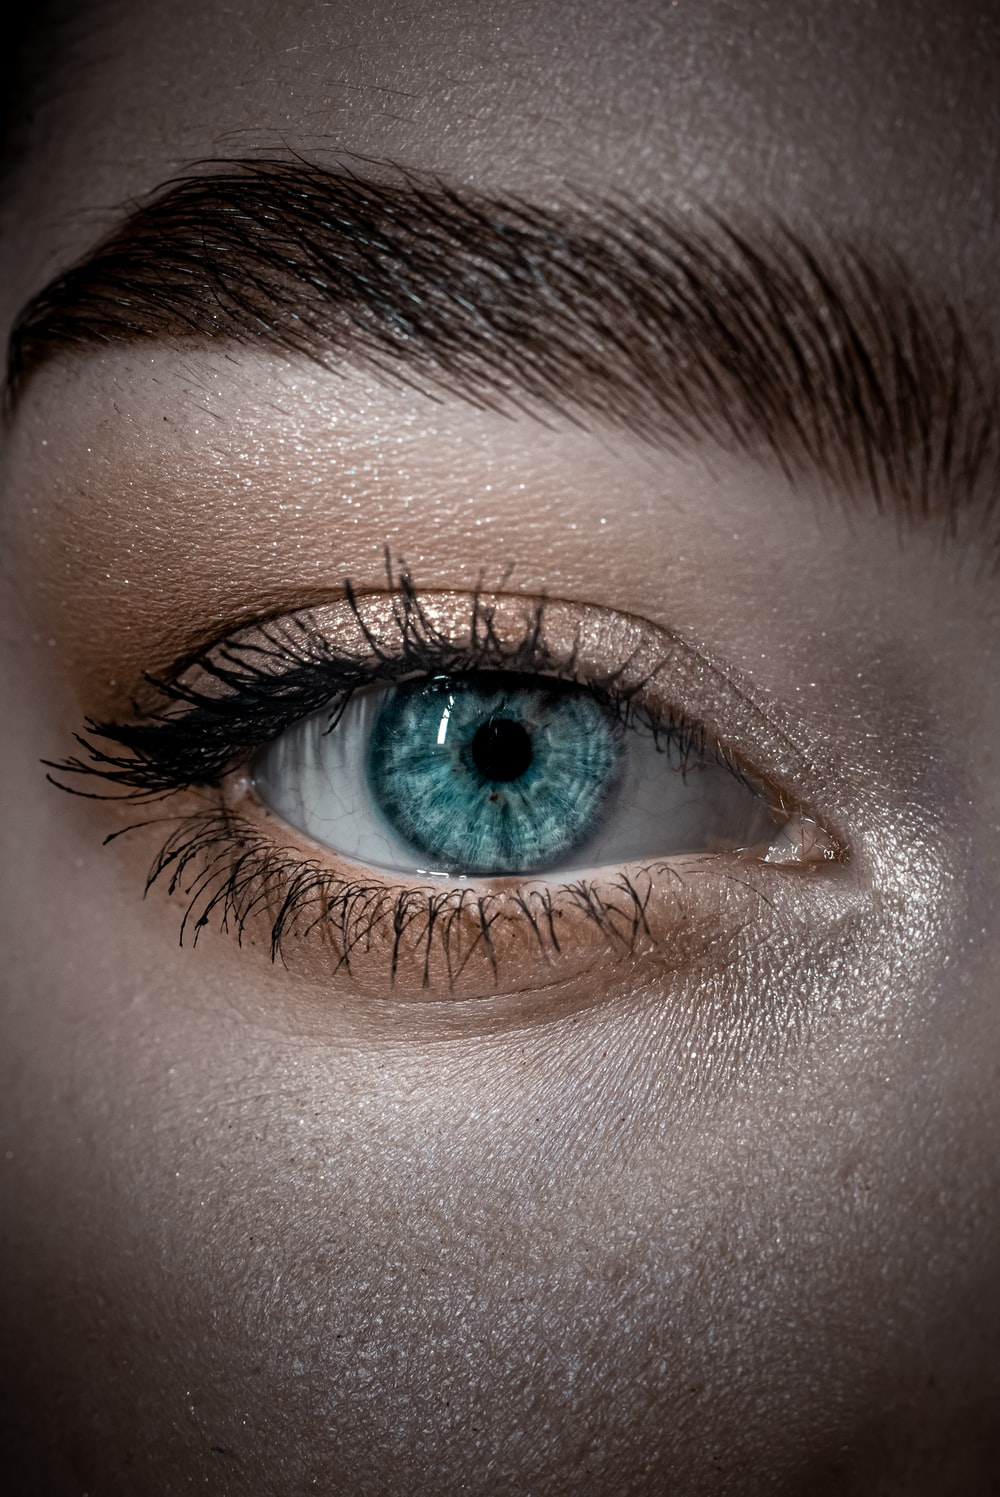 persons blue eyes in close up photography